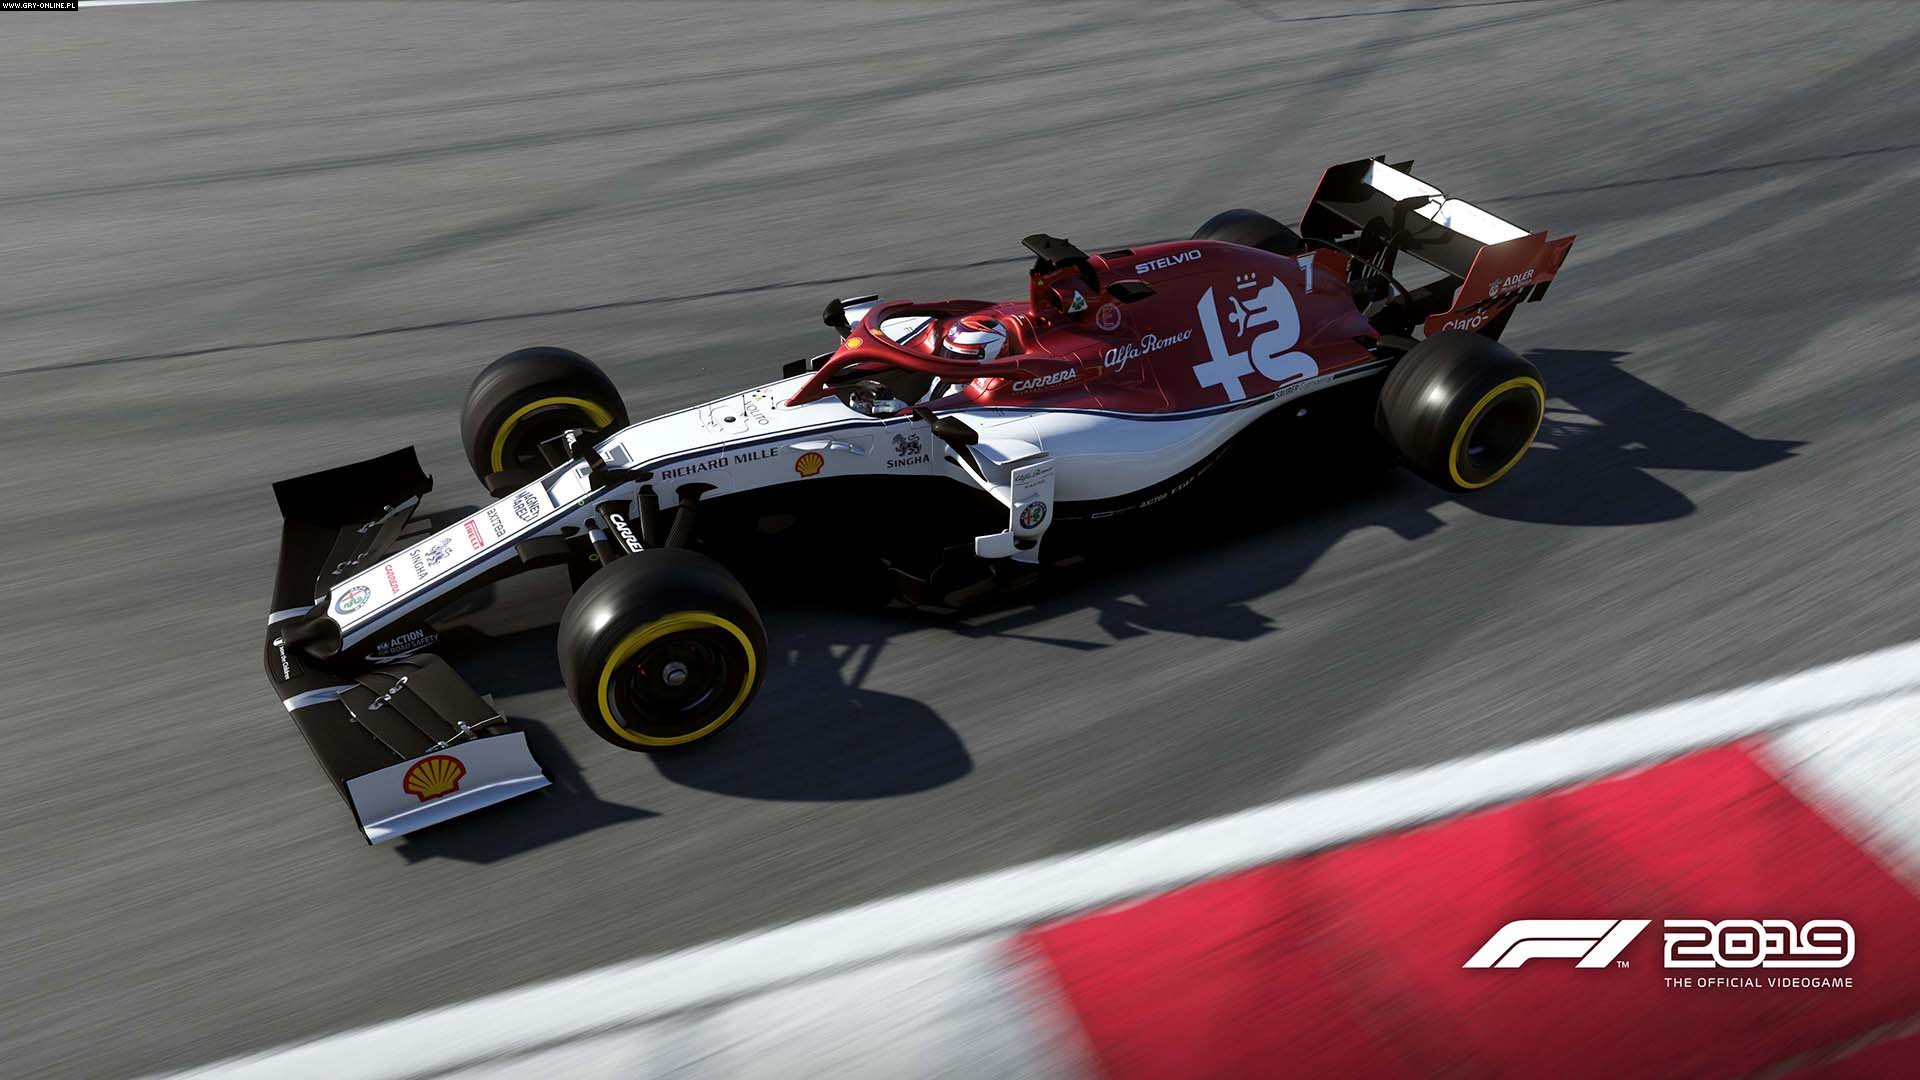 F1 2019 PC, PS4, XONE Games Image 37/104, Codemasters Software